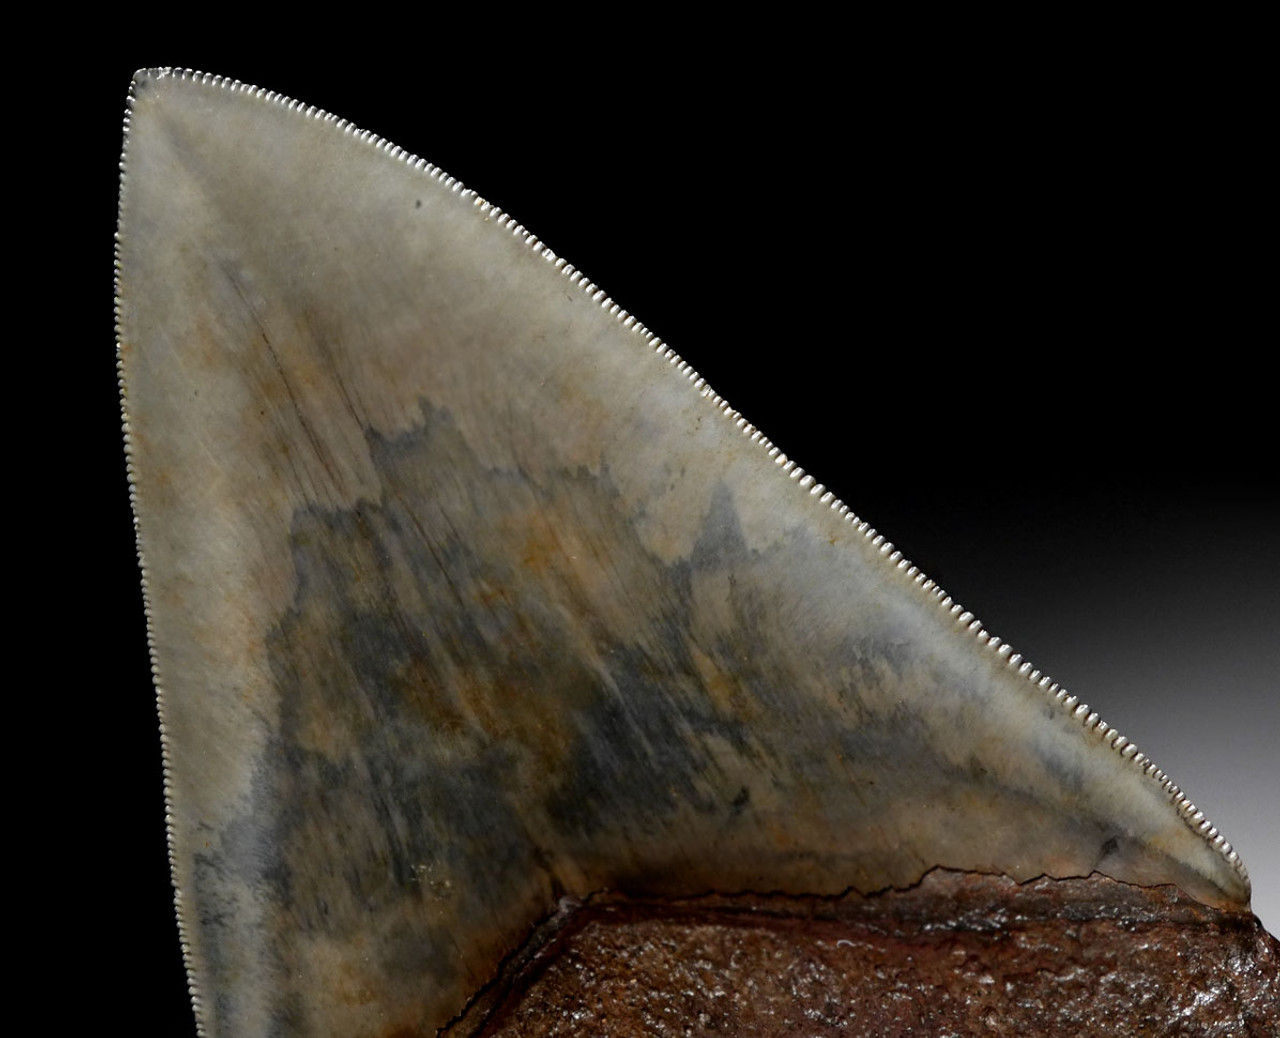 FINEST LARGE INVESTMENT QUALITY MEGALODON SHARK TOOTH 4.8 INCH WITH BRONZE AND STEEL BLUE ENAMEL *SH6-412